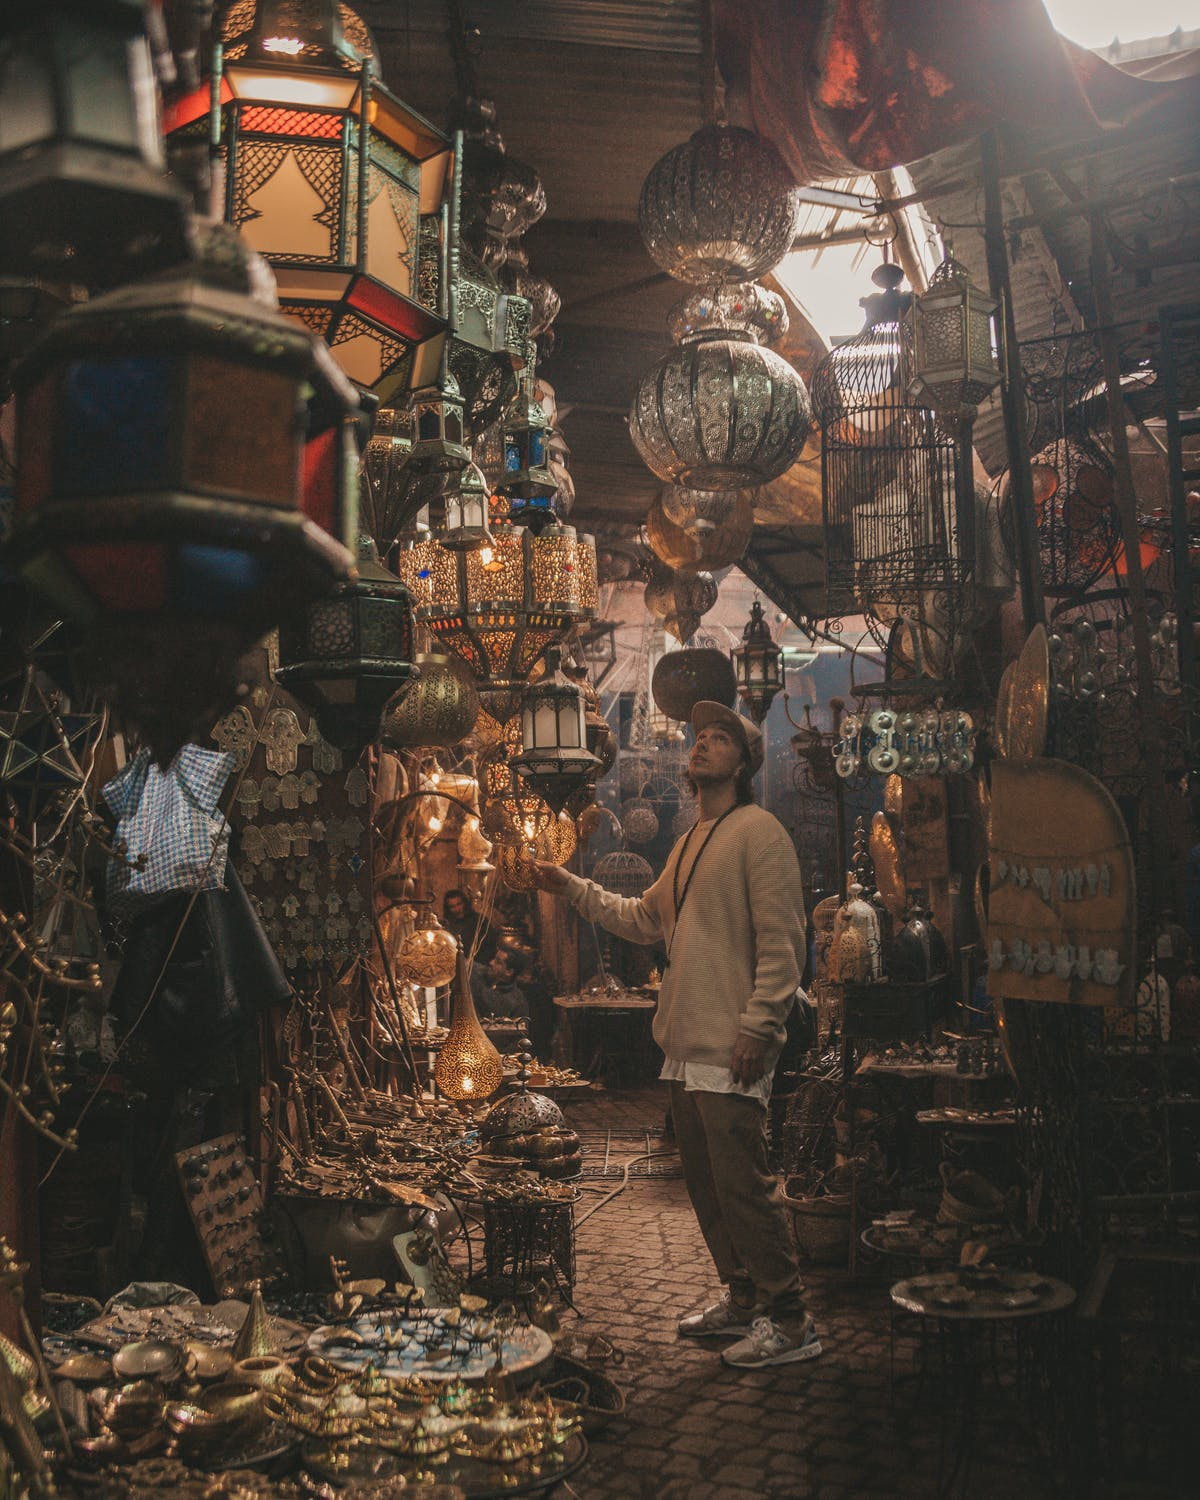 A man looks in wonder in a Persian bazaar upon old lanterns, rugs and spices